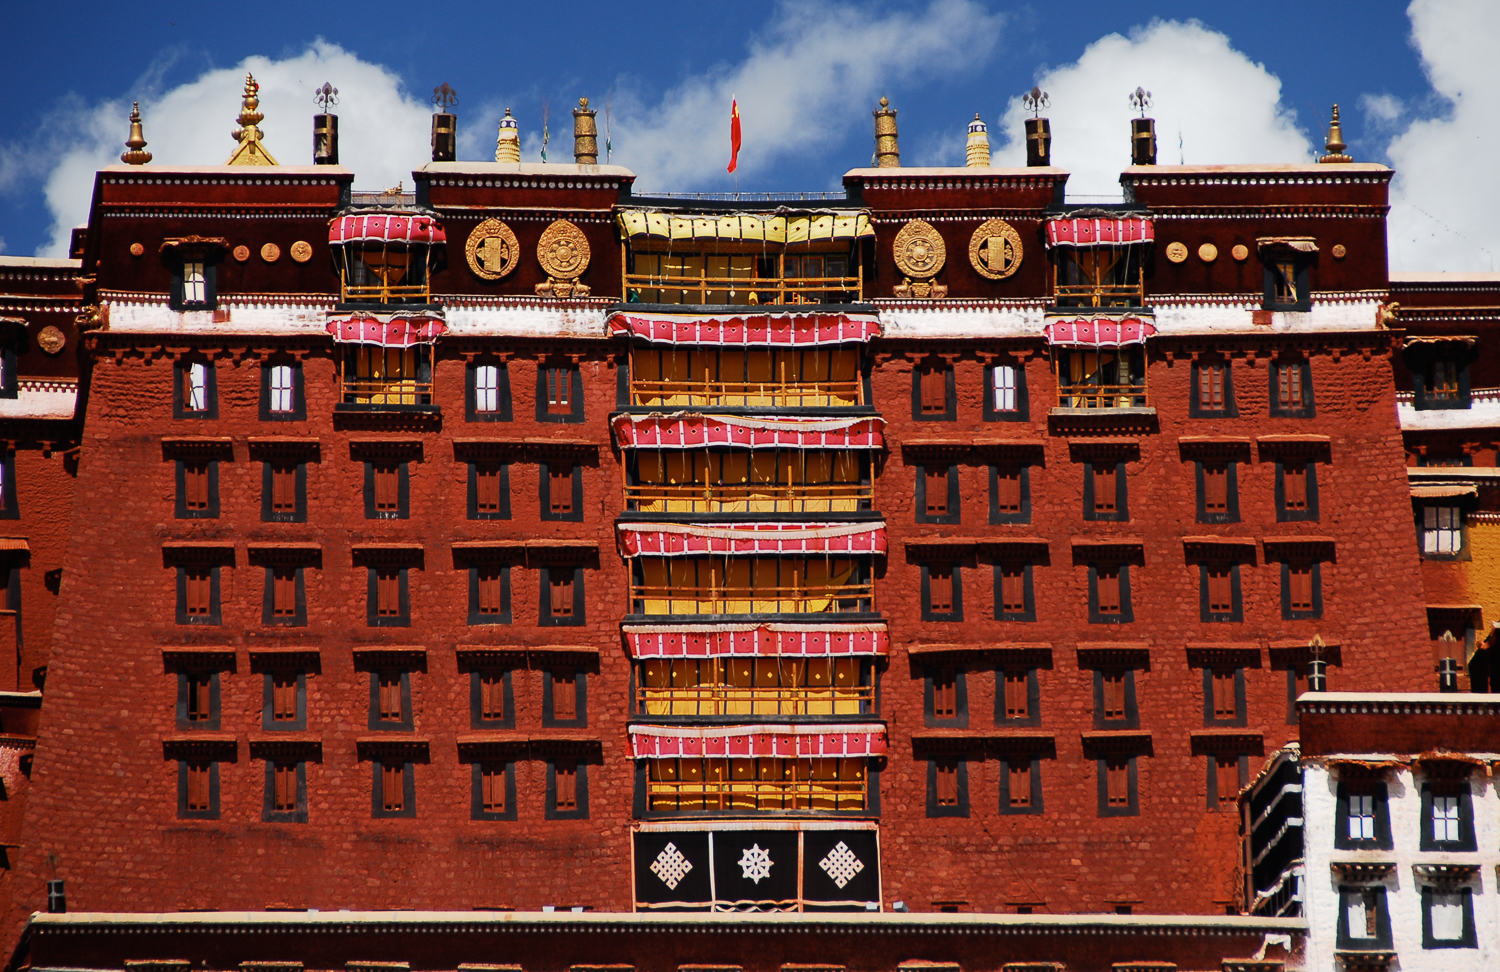 The central Red Palace of the Potala Palace owes its name to its crimson colour.